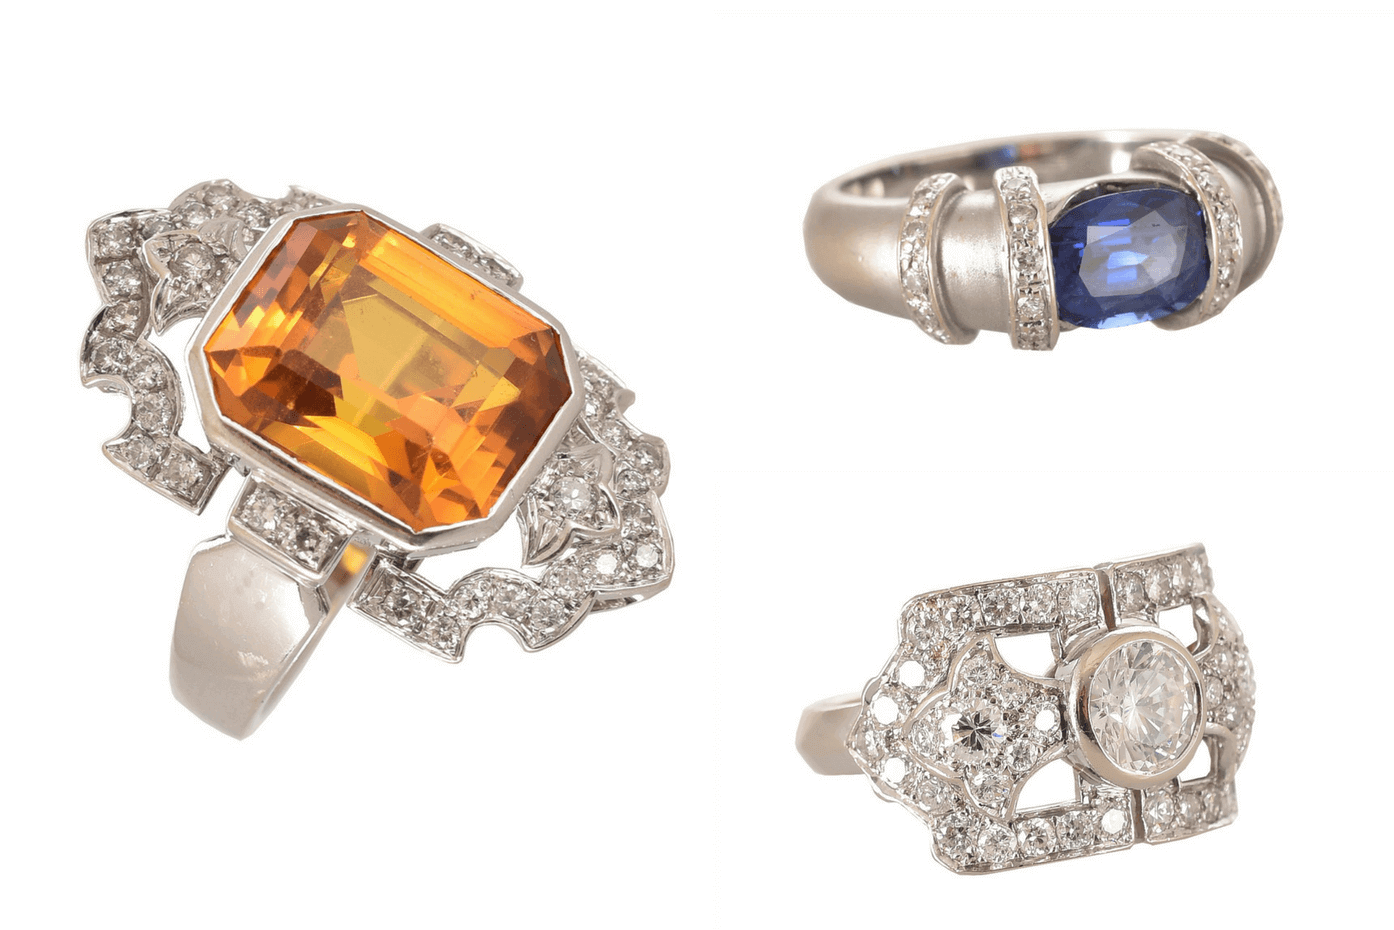 Clockwise from left: Imperial Topaz Ring, Deco Ring and Sapphire Ring. Photos courtesy of Percossi Papi.